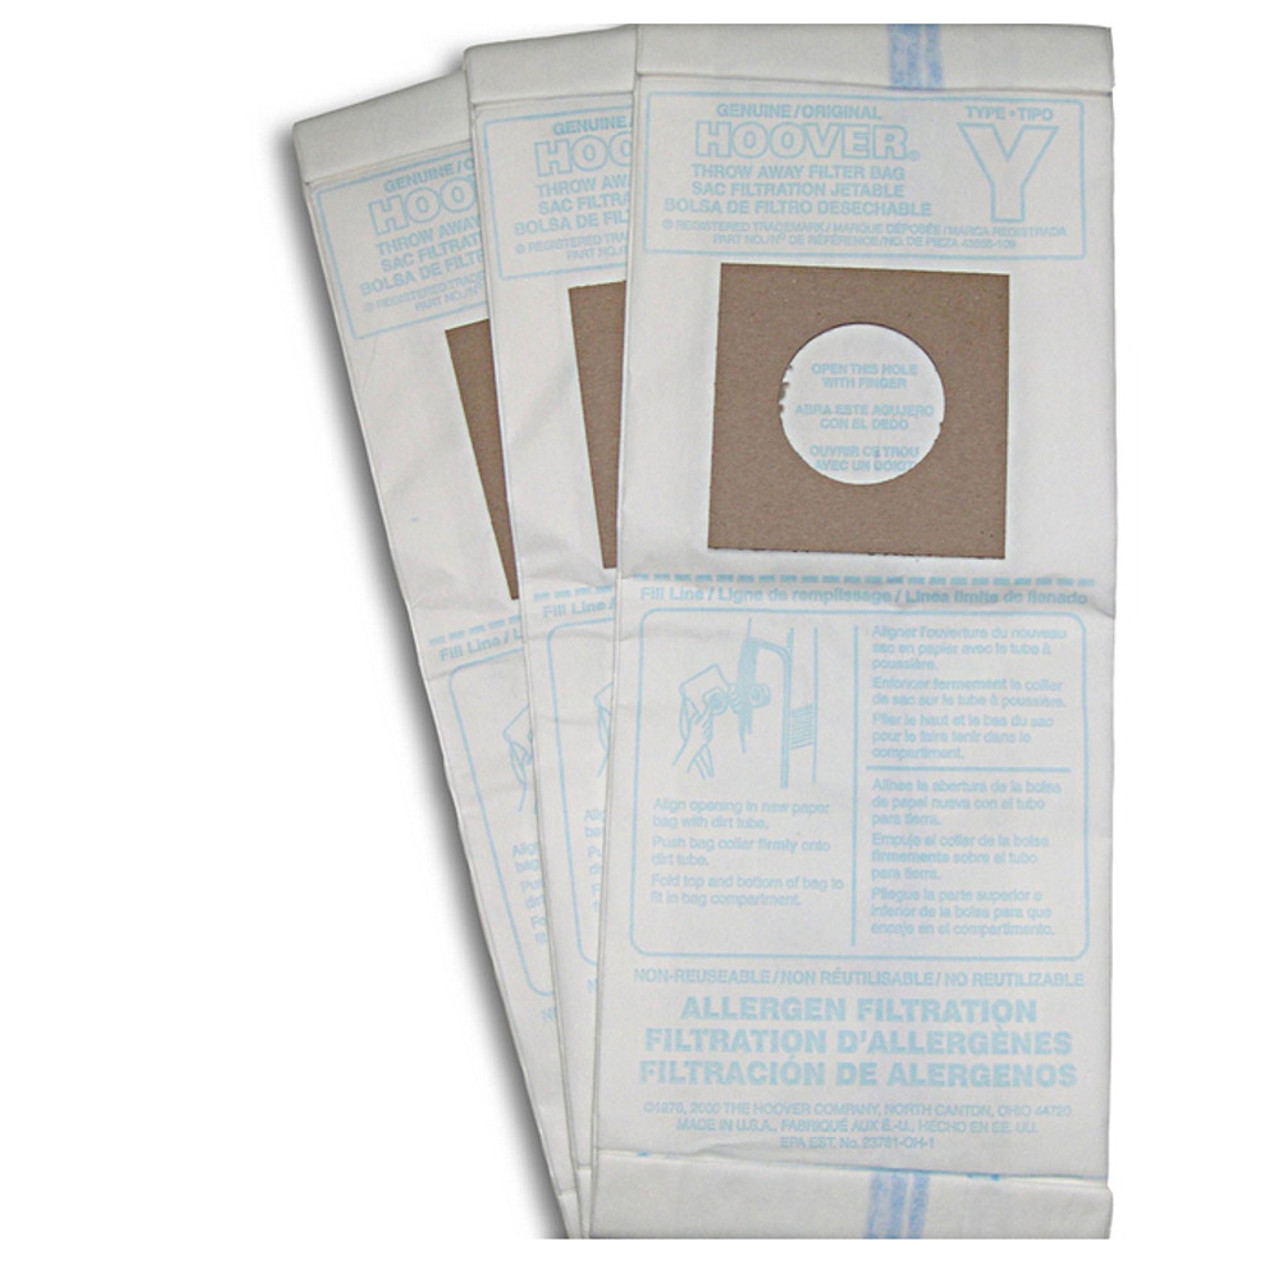 Type Y Filter Bags Come 3 to a Package.